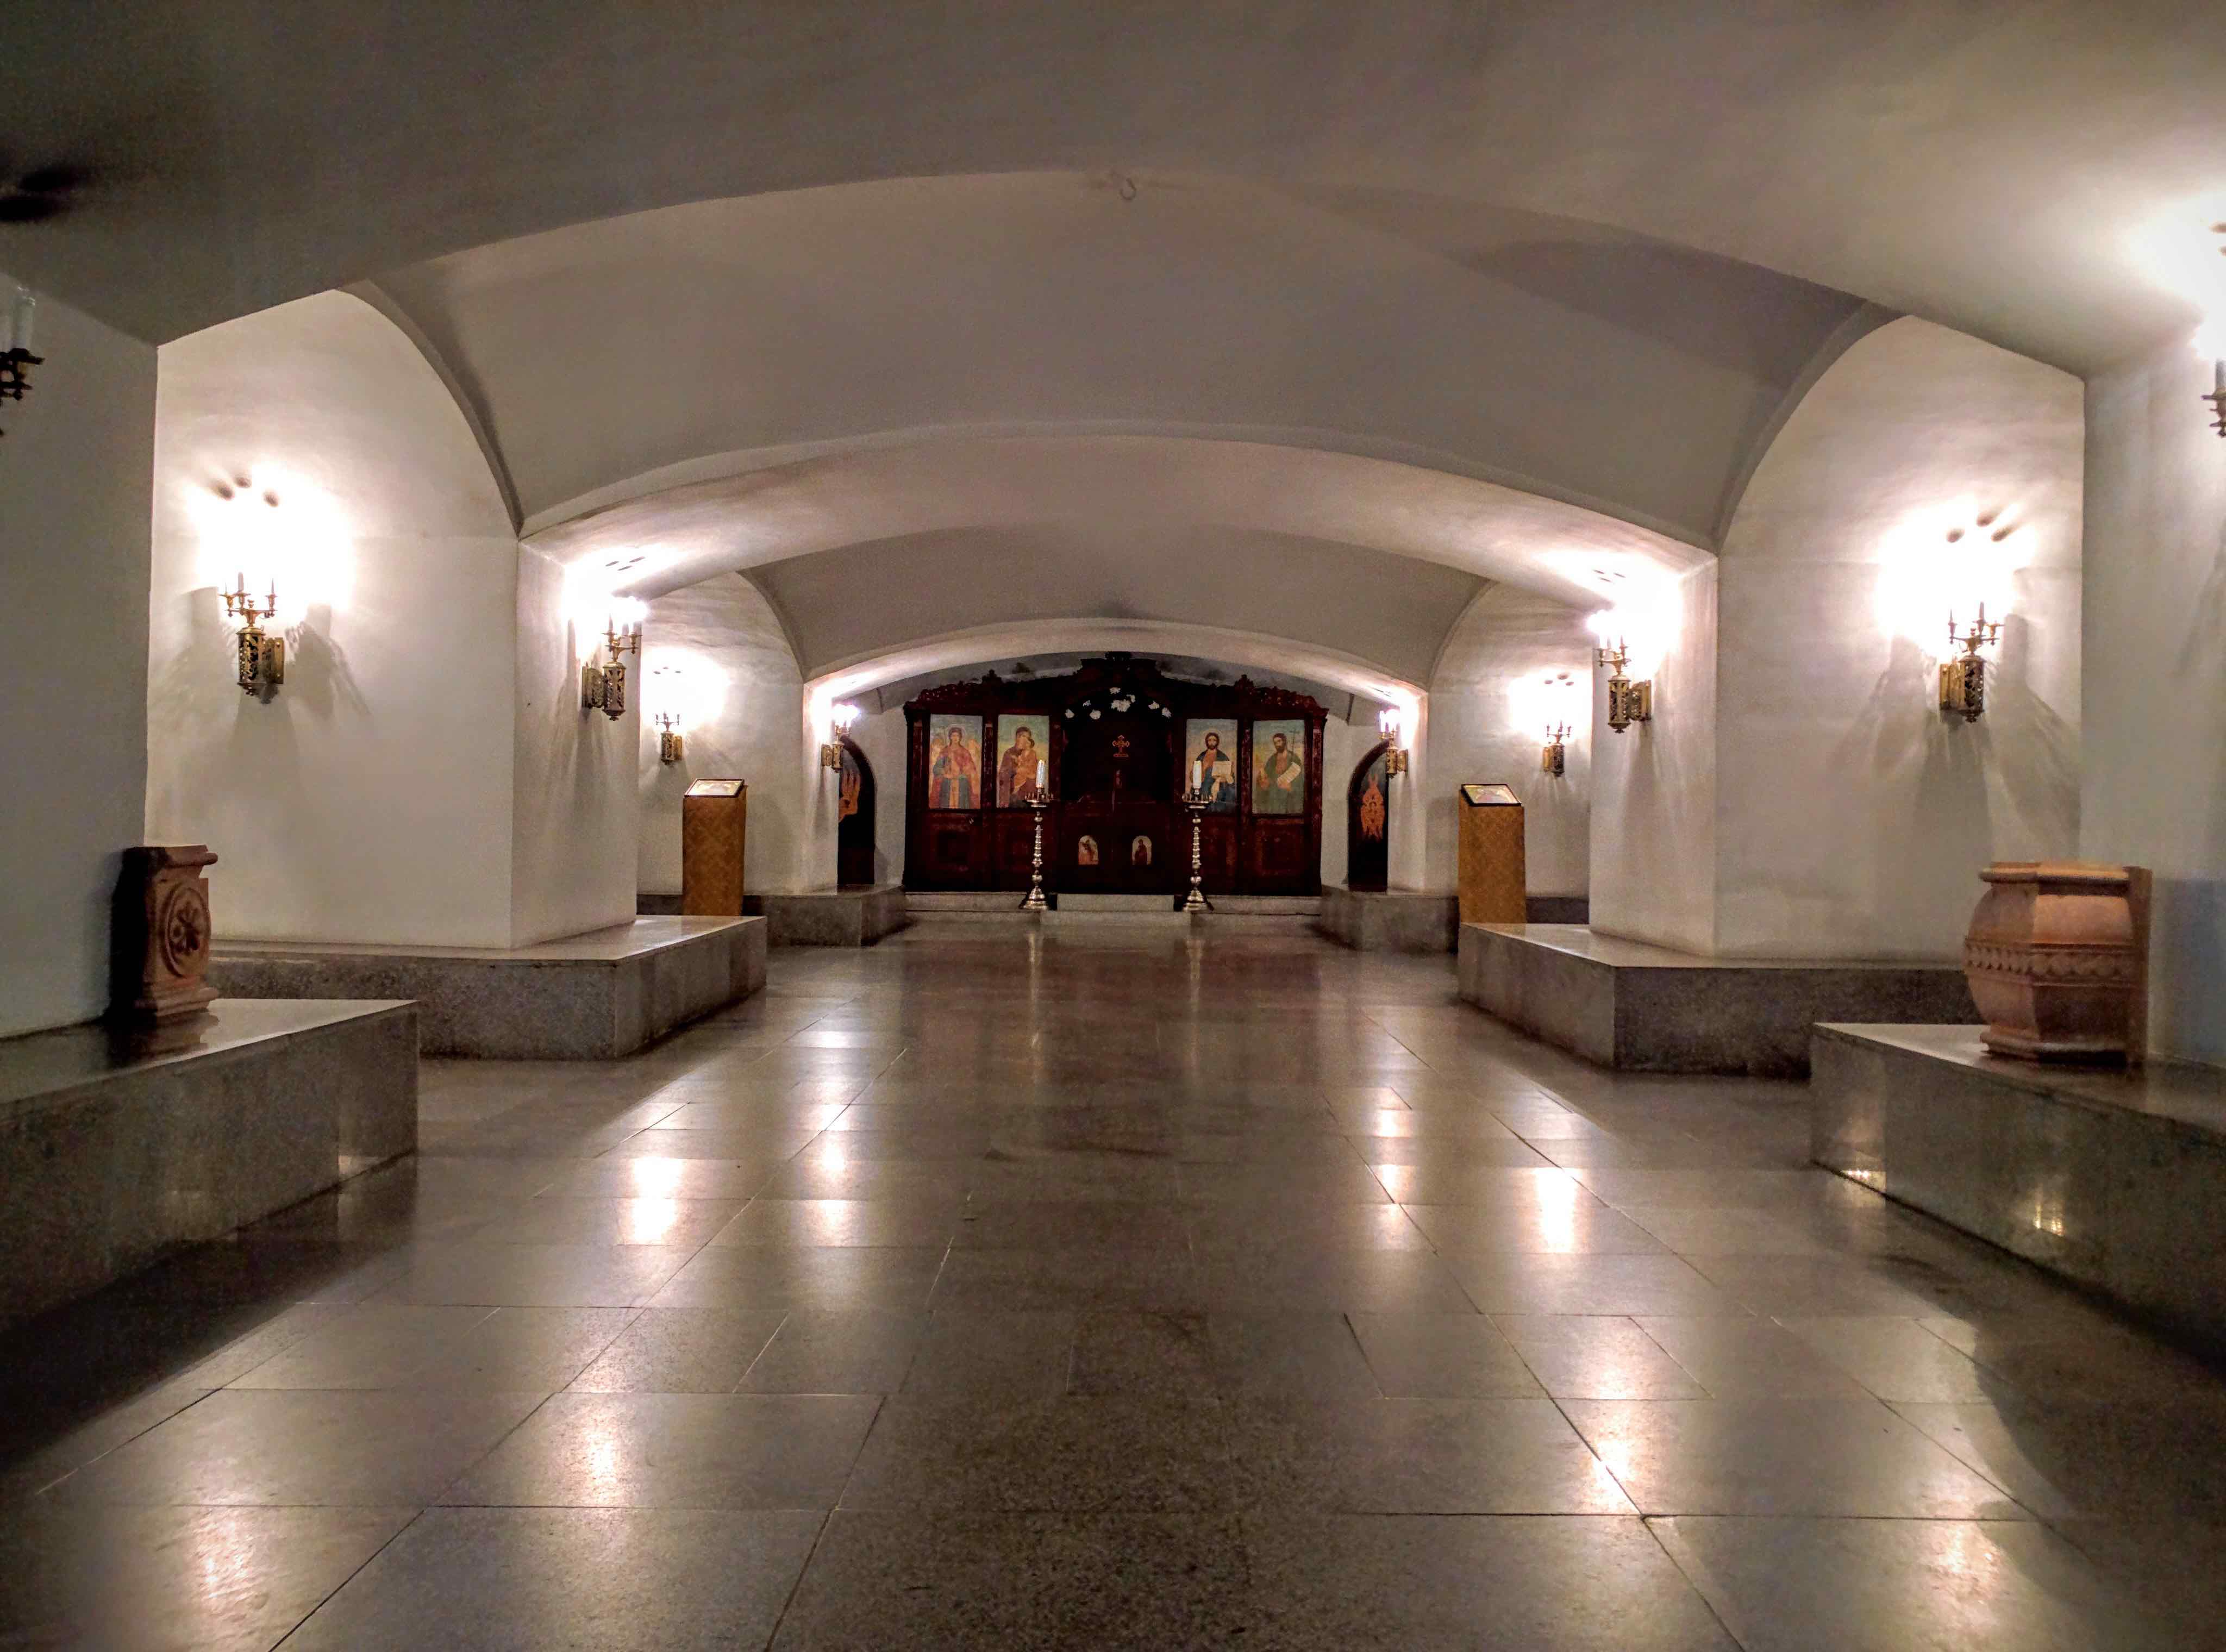 The crypt of the Shipka Memorial Church. Along the two sides are multiple sarcophagi.